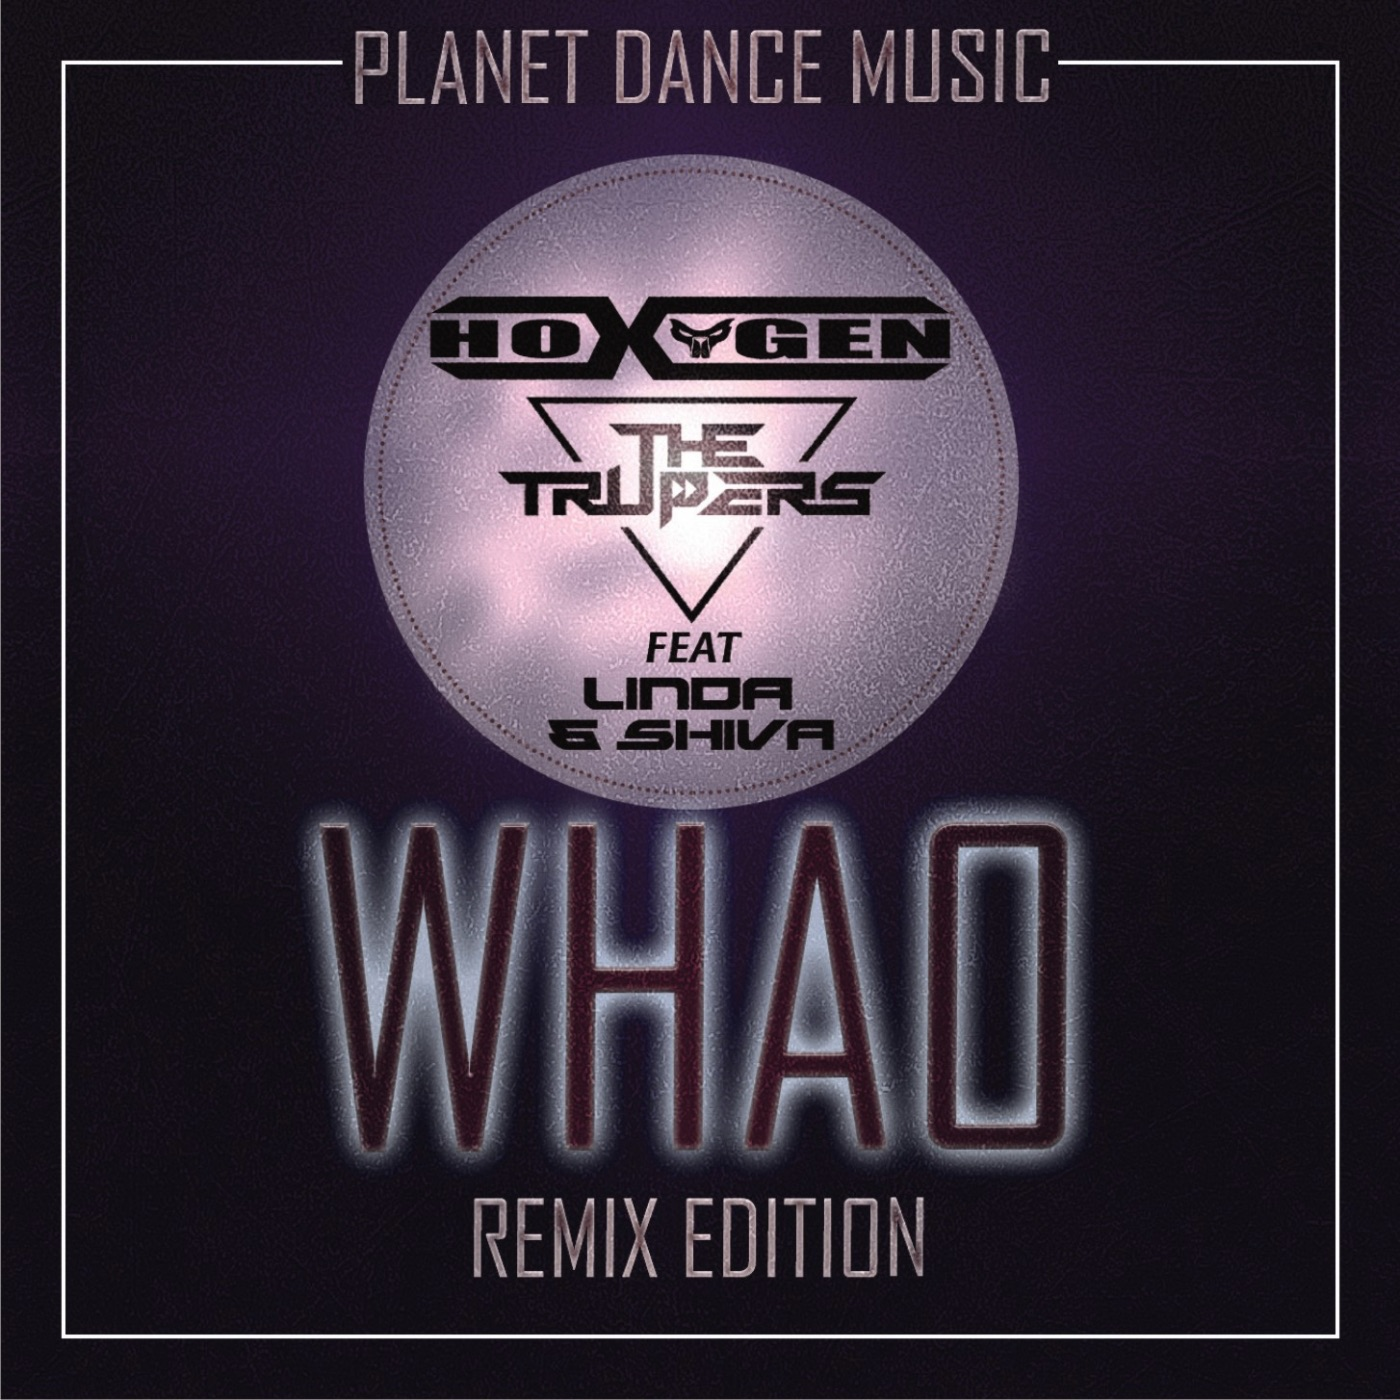 Whao (Remix Edition) [feat. Linda & Shiva] - EP